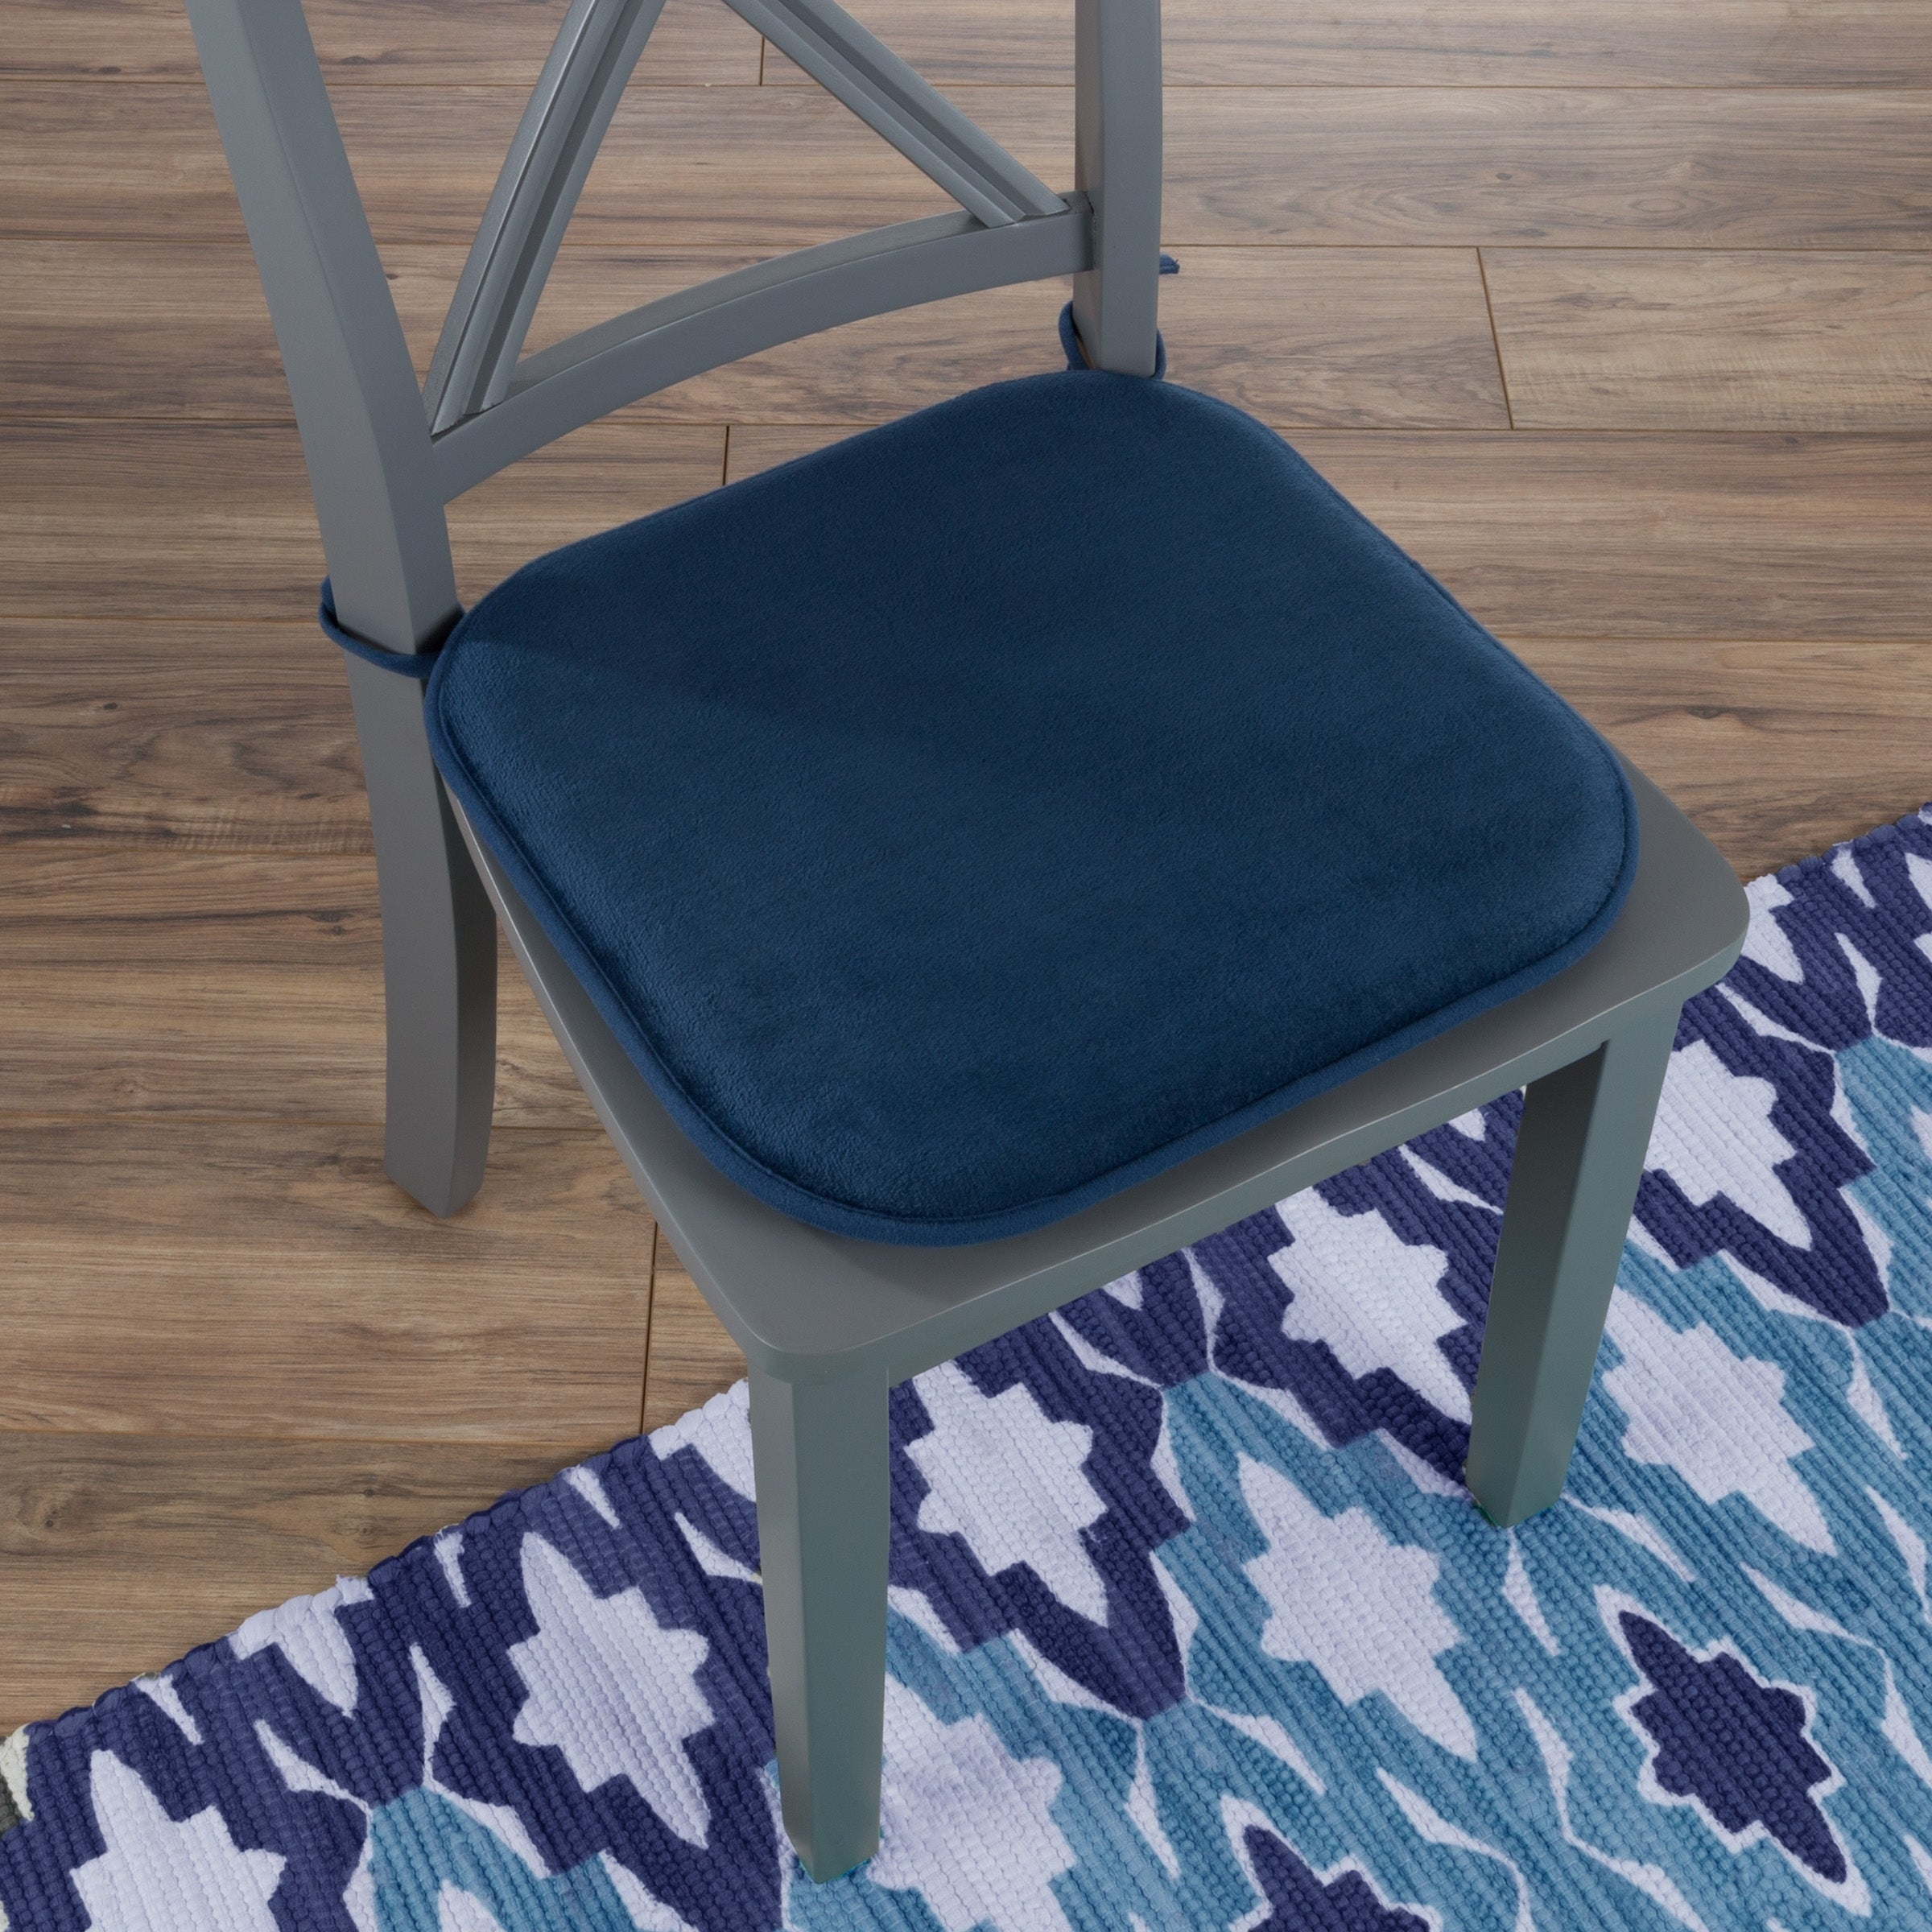 Shop Black Friday Deals On Memory Foam Chair Cushion 16 X 16 25 With Ties By Windsor Home On Sale Overstock 21143732